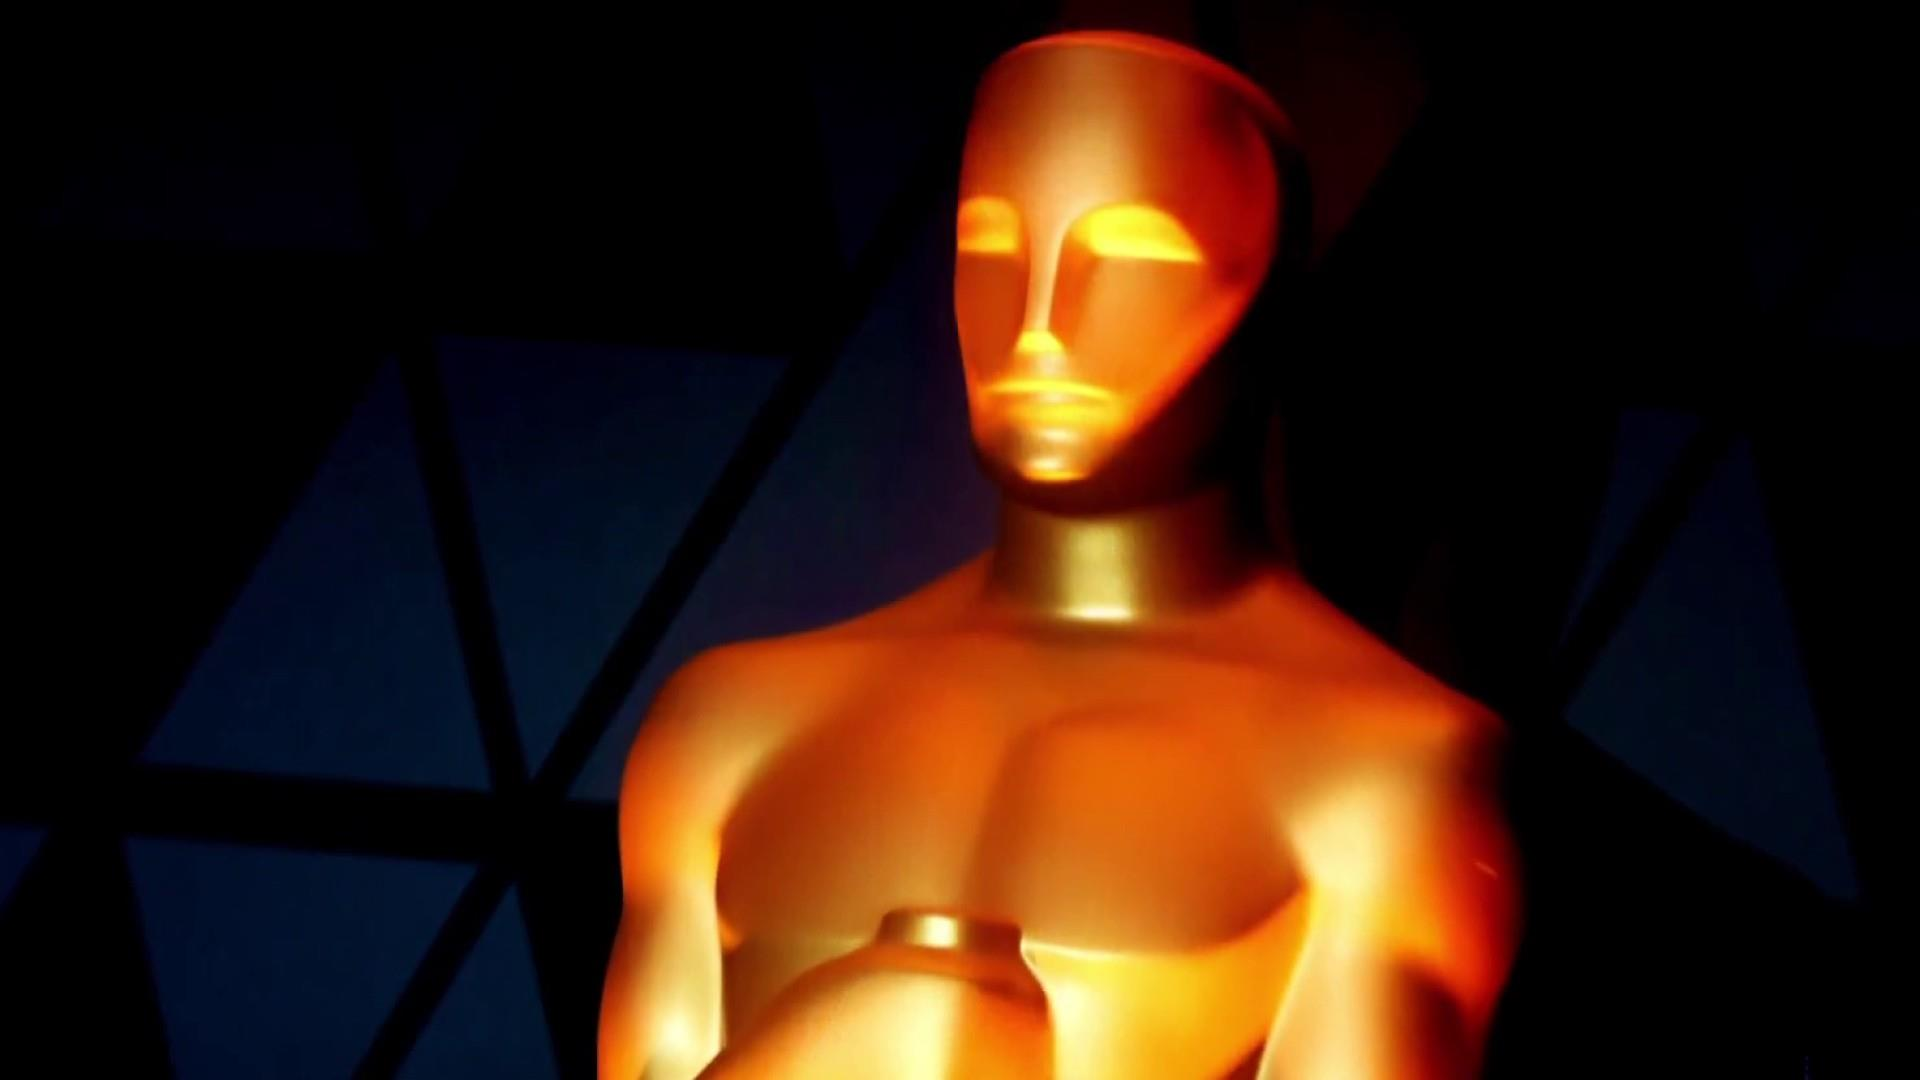 Changes at the Oscars: What to know ahead of the 91st award ceremony